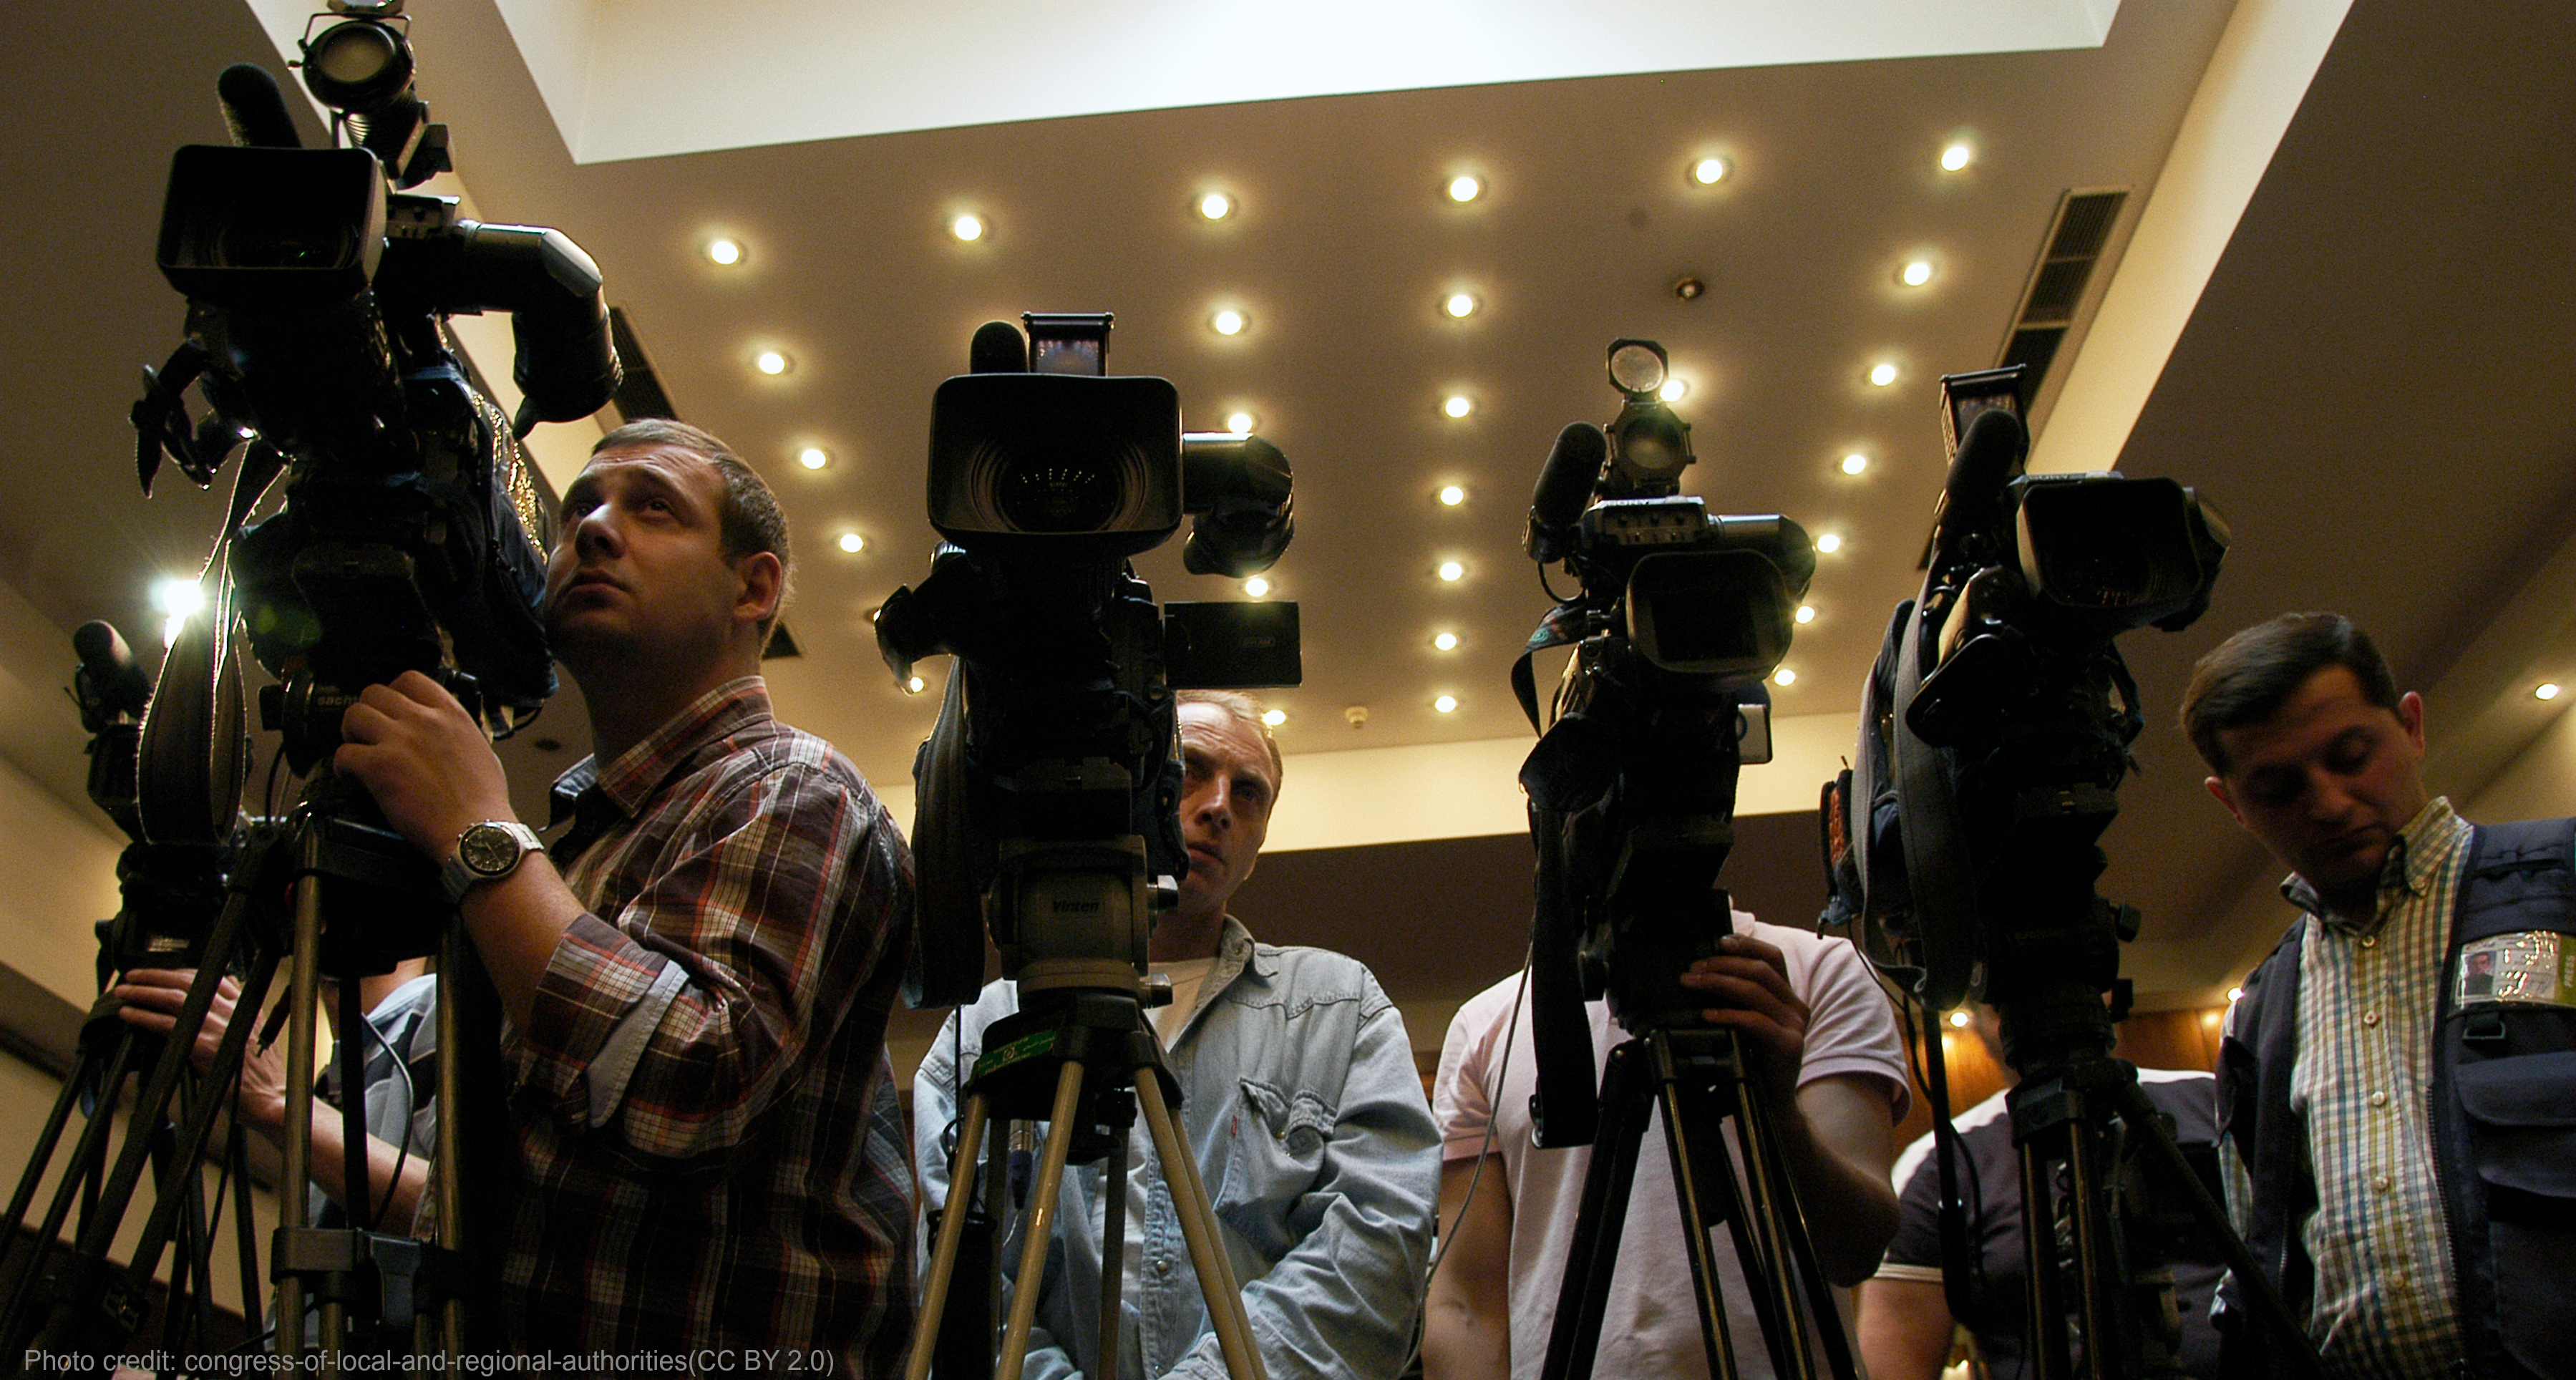 Camera_crews_at_the_joint_Press_Conference_given_by_the_Congress_and_the_ODIHR._Tbilisi,_2010 (1)